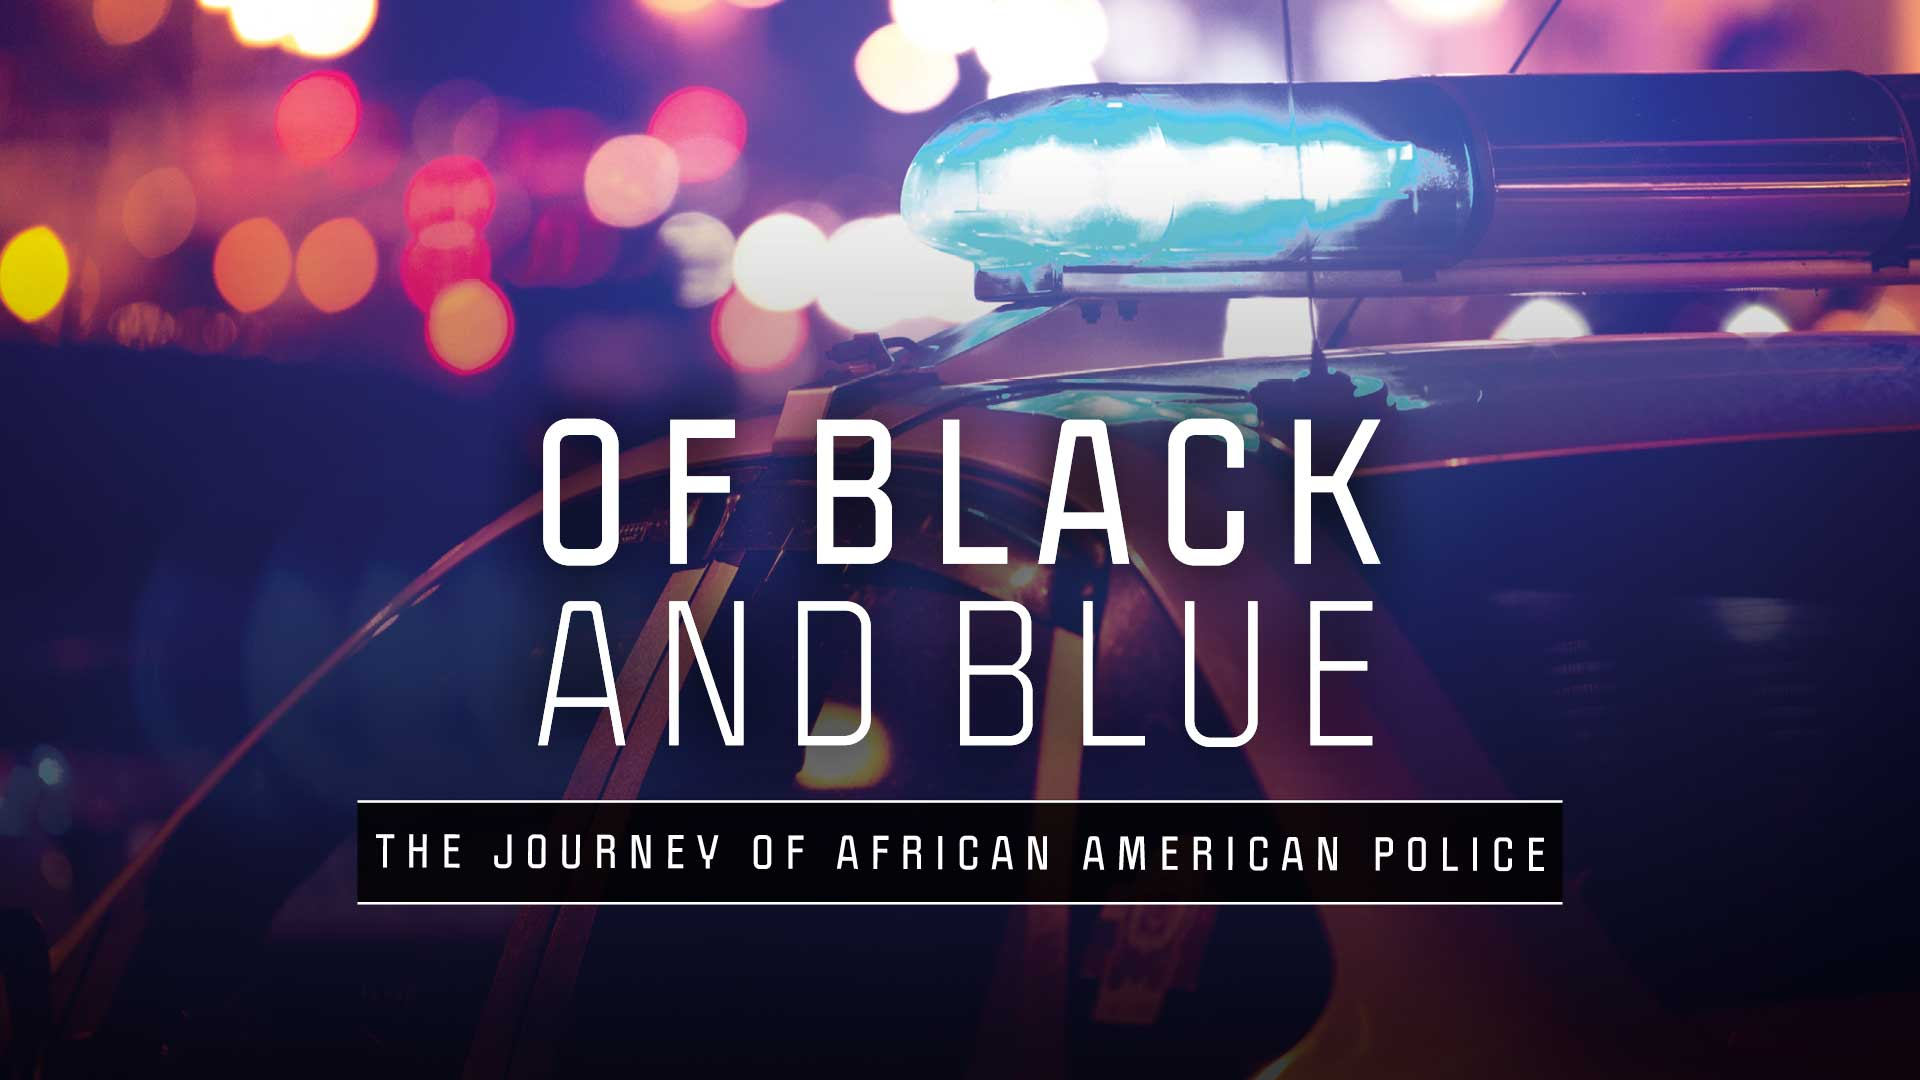 Of Black and Blue: The Journey of African American Police